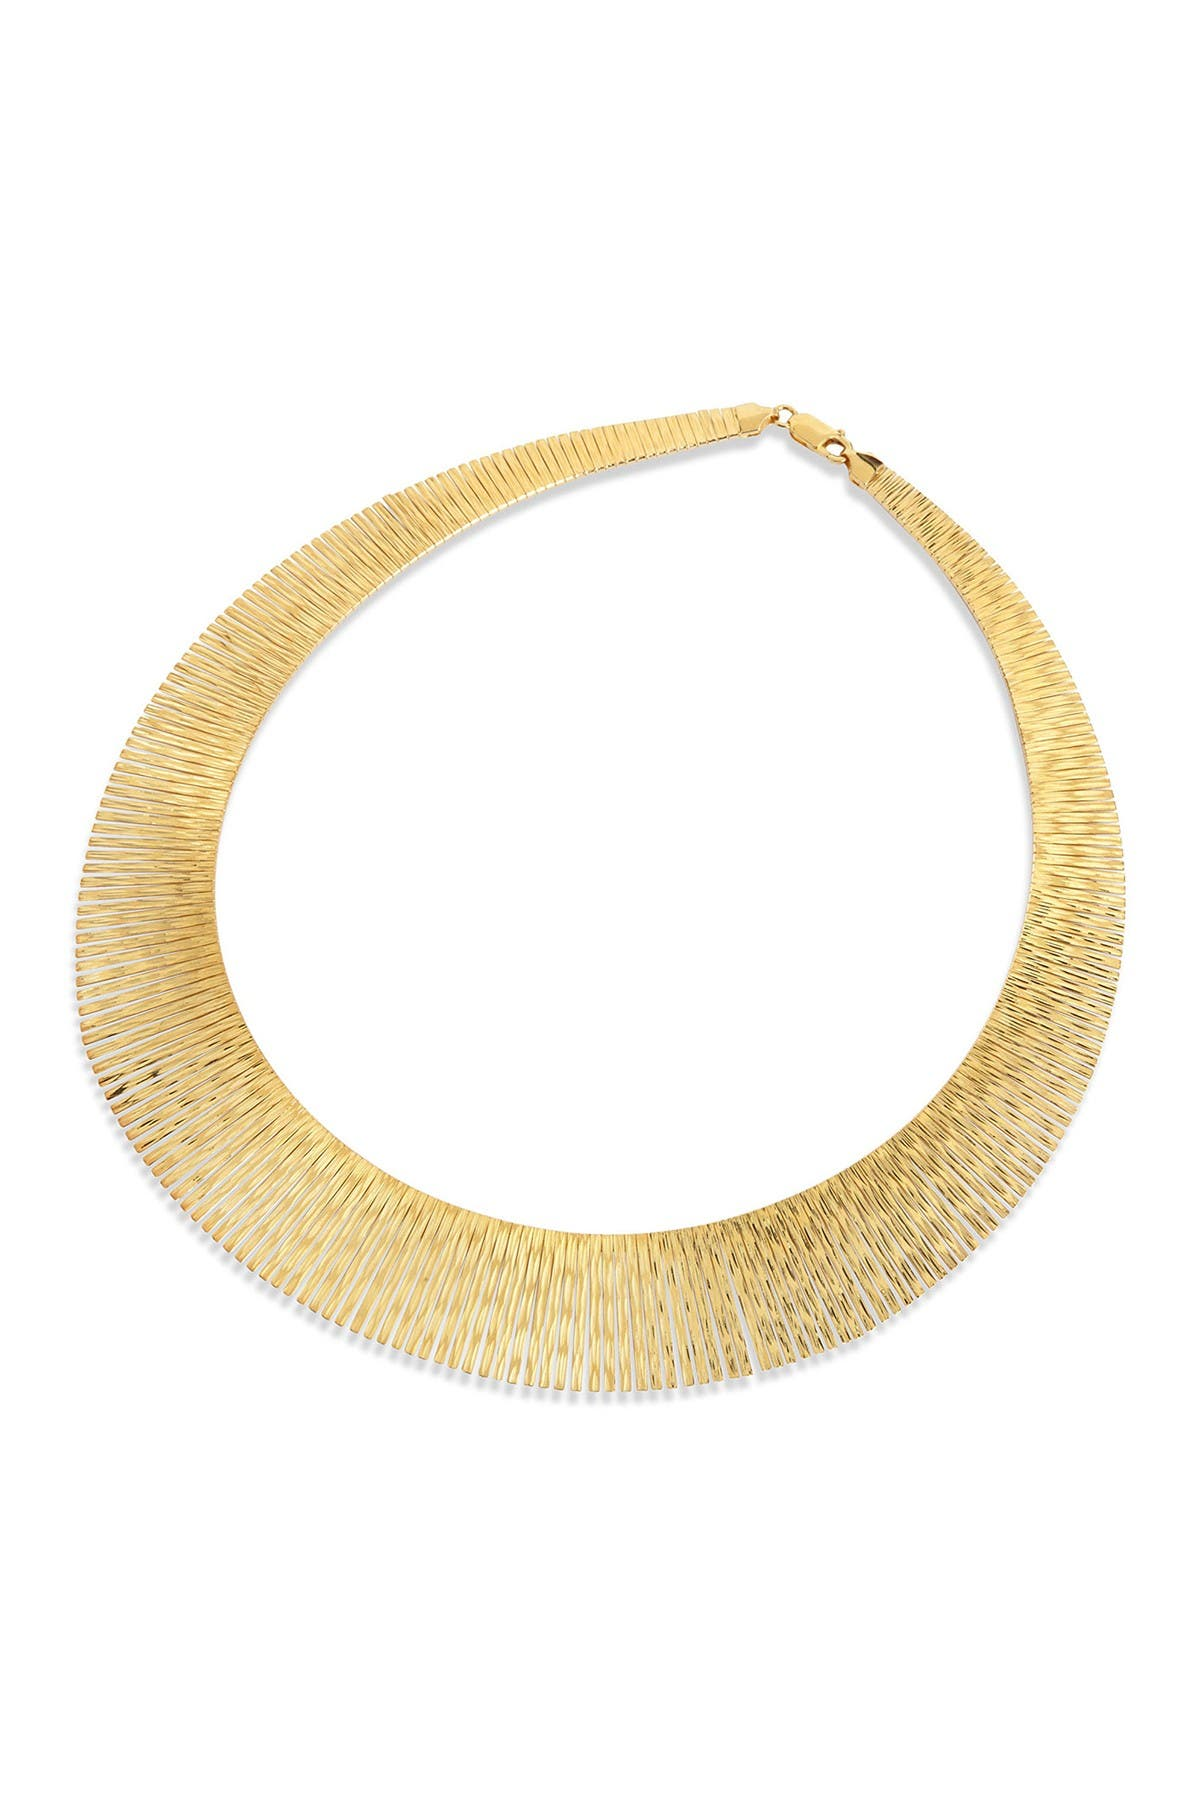 Image of Savvy Cie 18K Gold Bronze Graduated Necklace